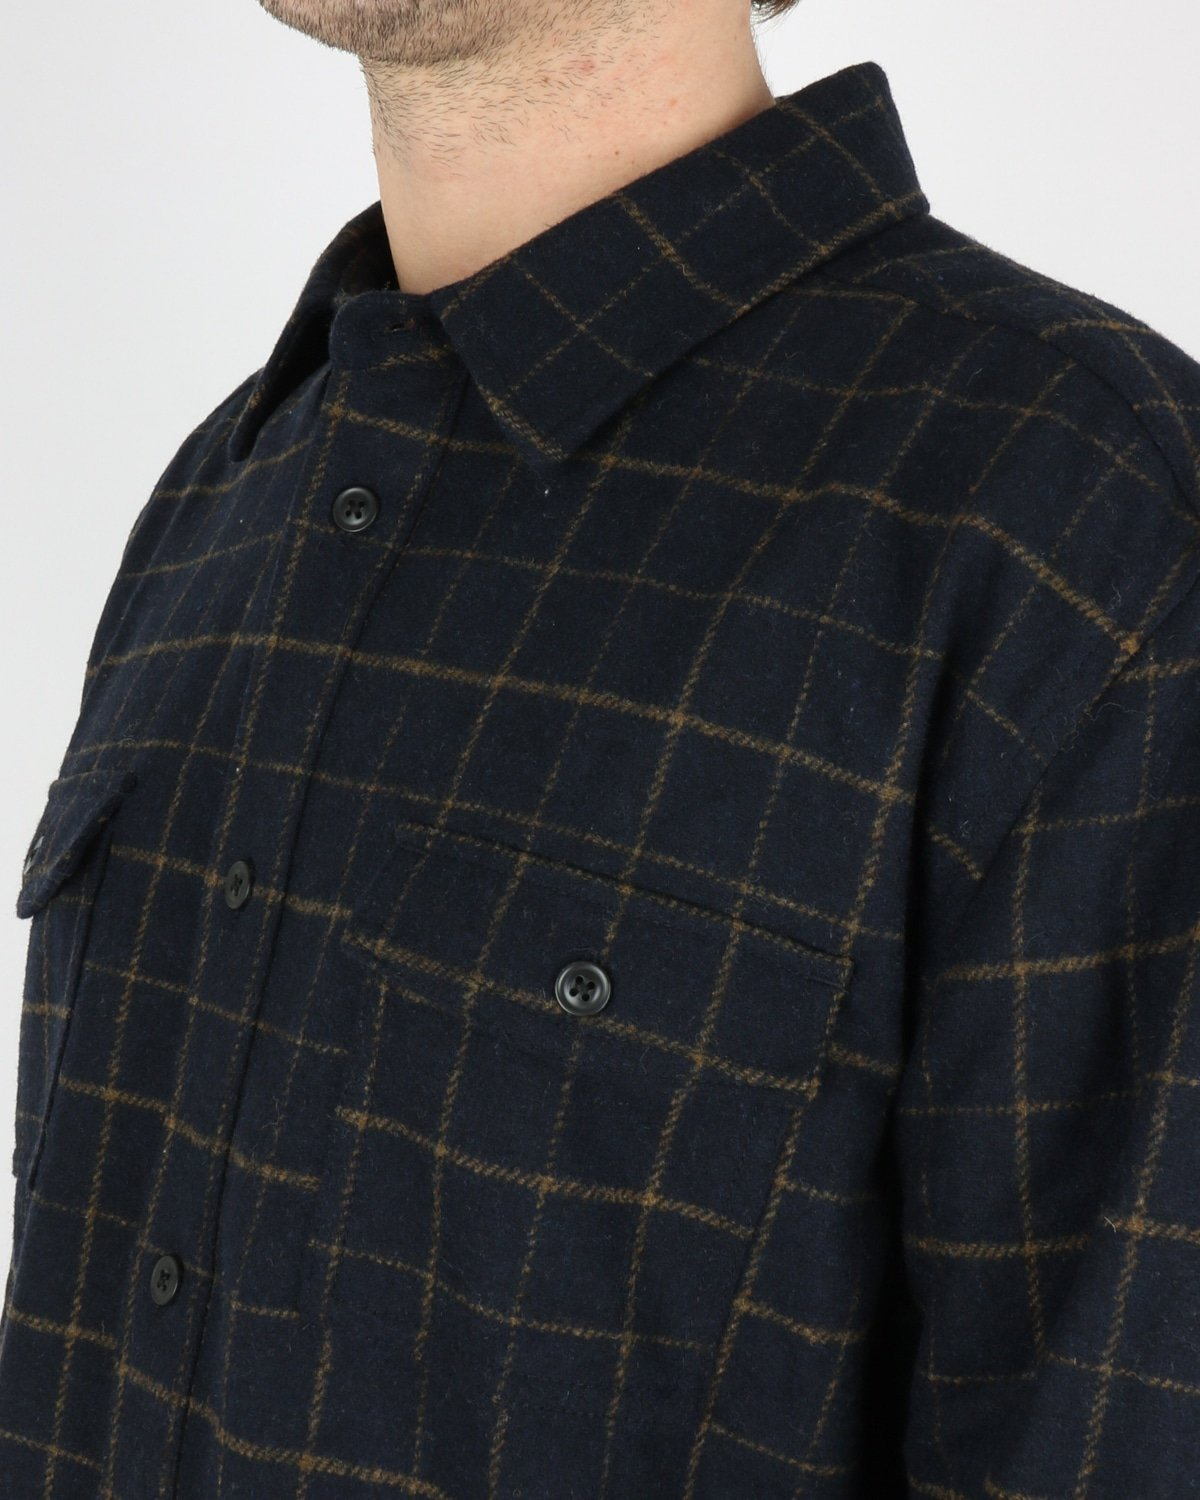 les deux_dines shirt jacket_dark navy_3_4